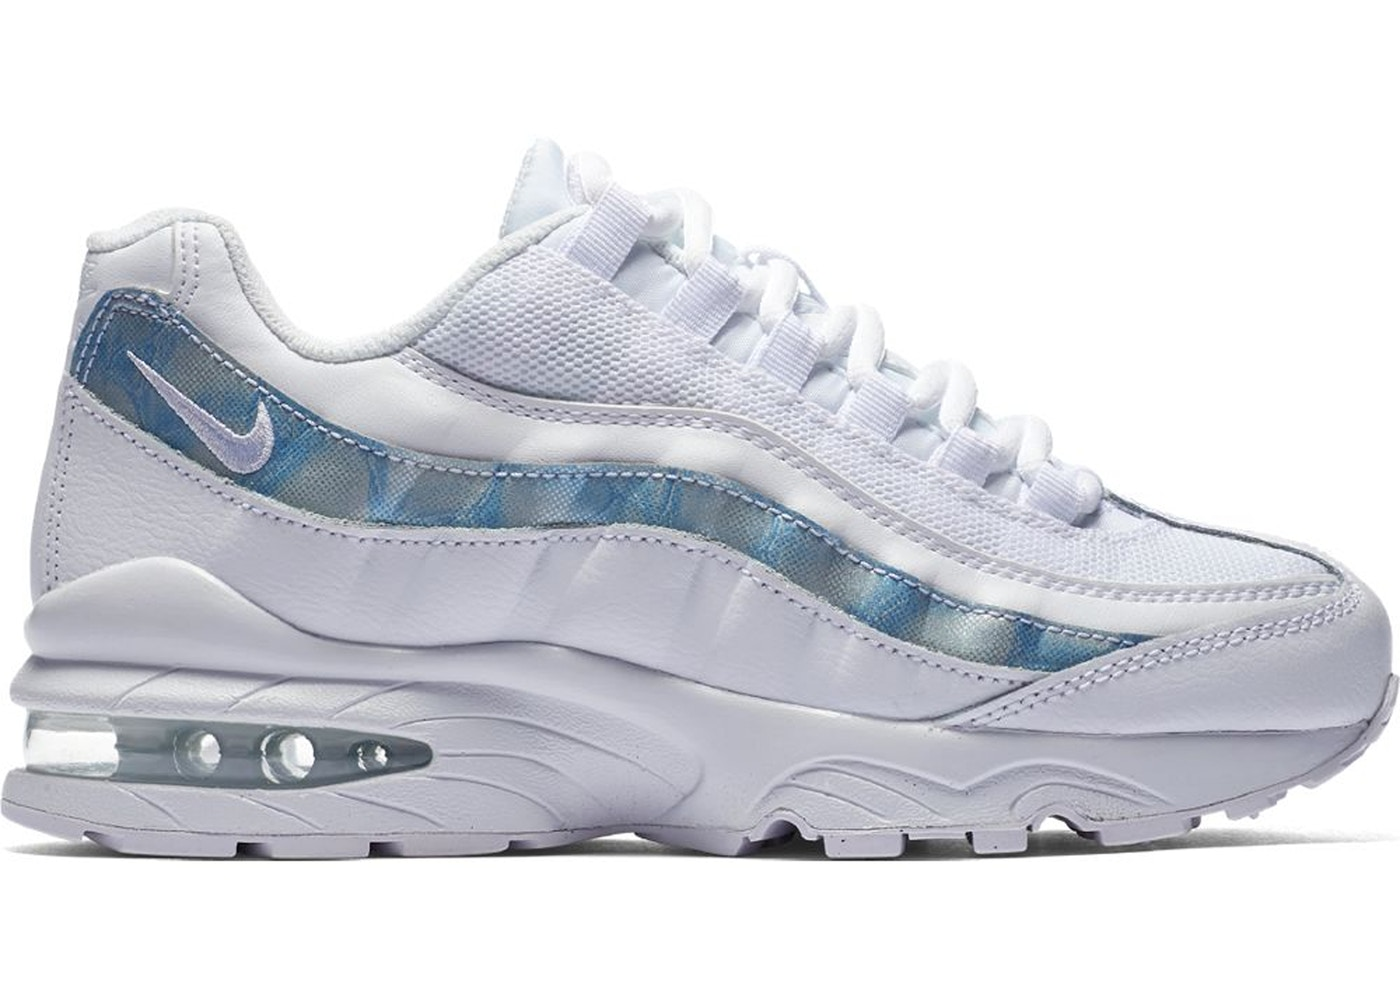 big sale best choice details for Nike Air Max 95 White Cobalt Pulse (GS) - 905348-102